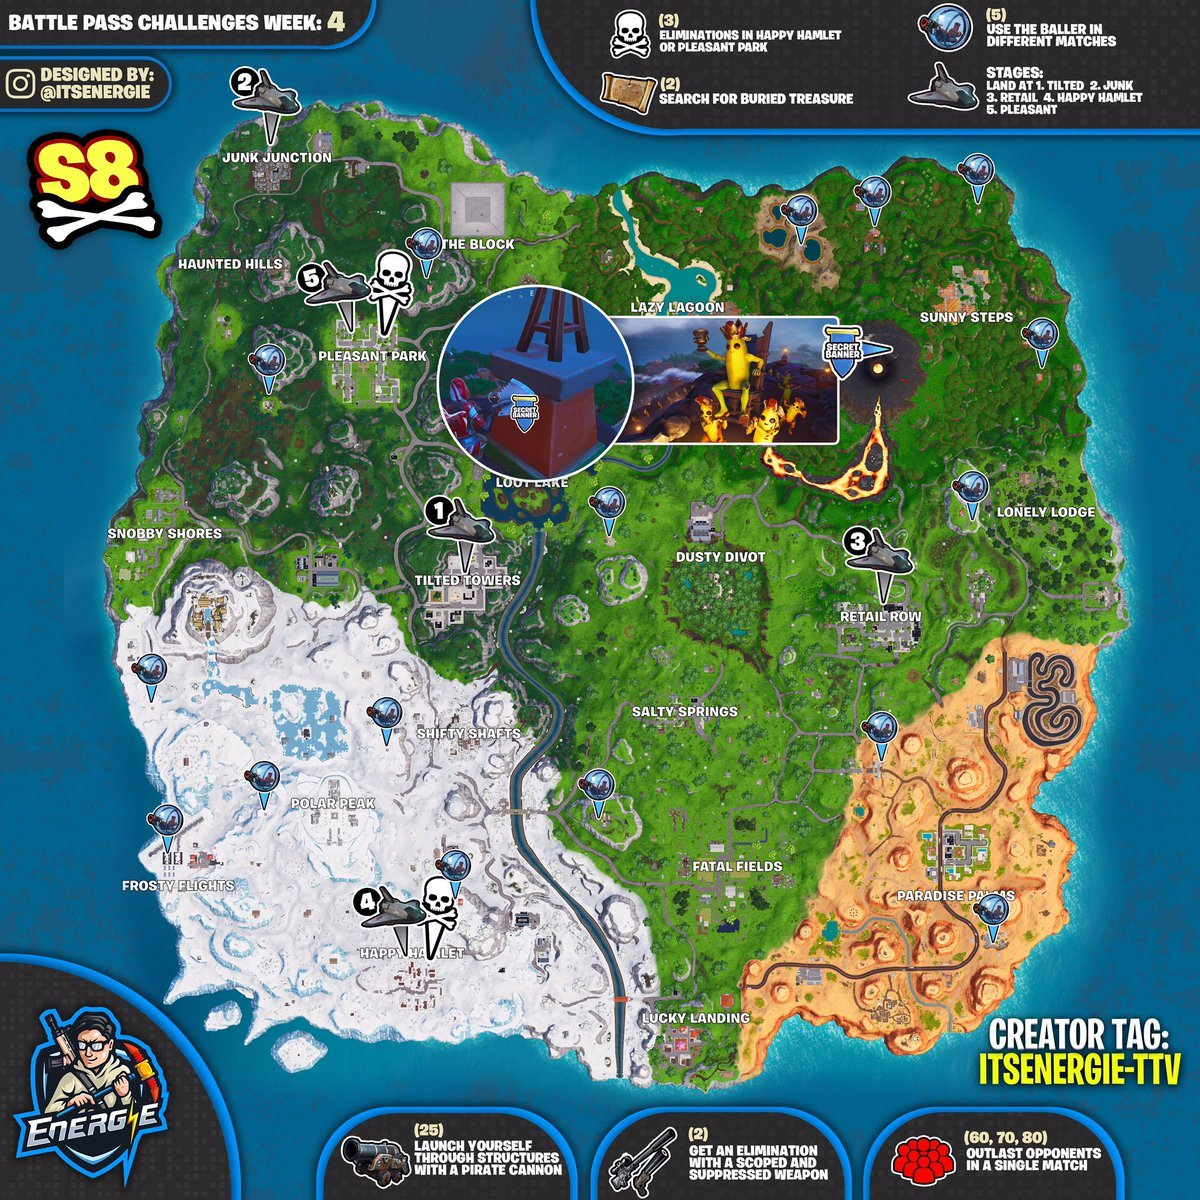 Fortnite follow the map in pleasant park